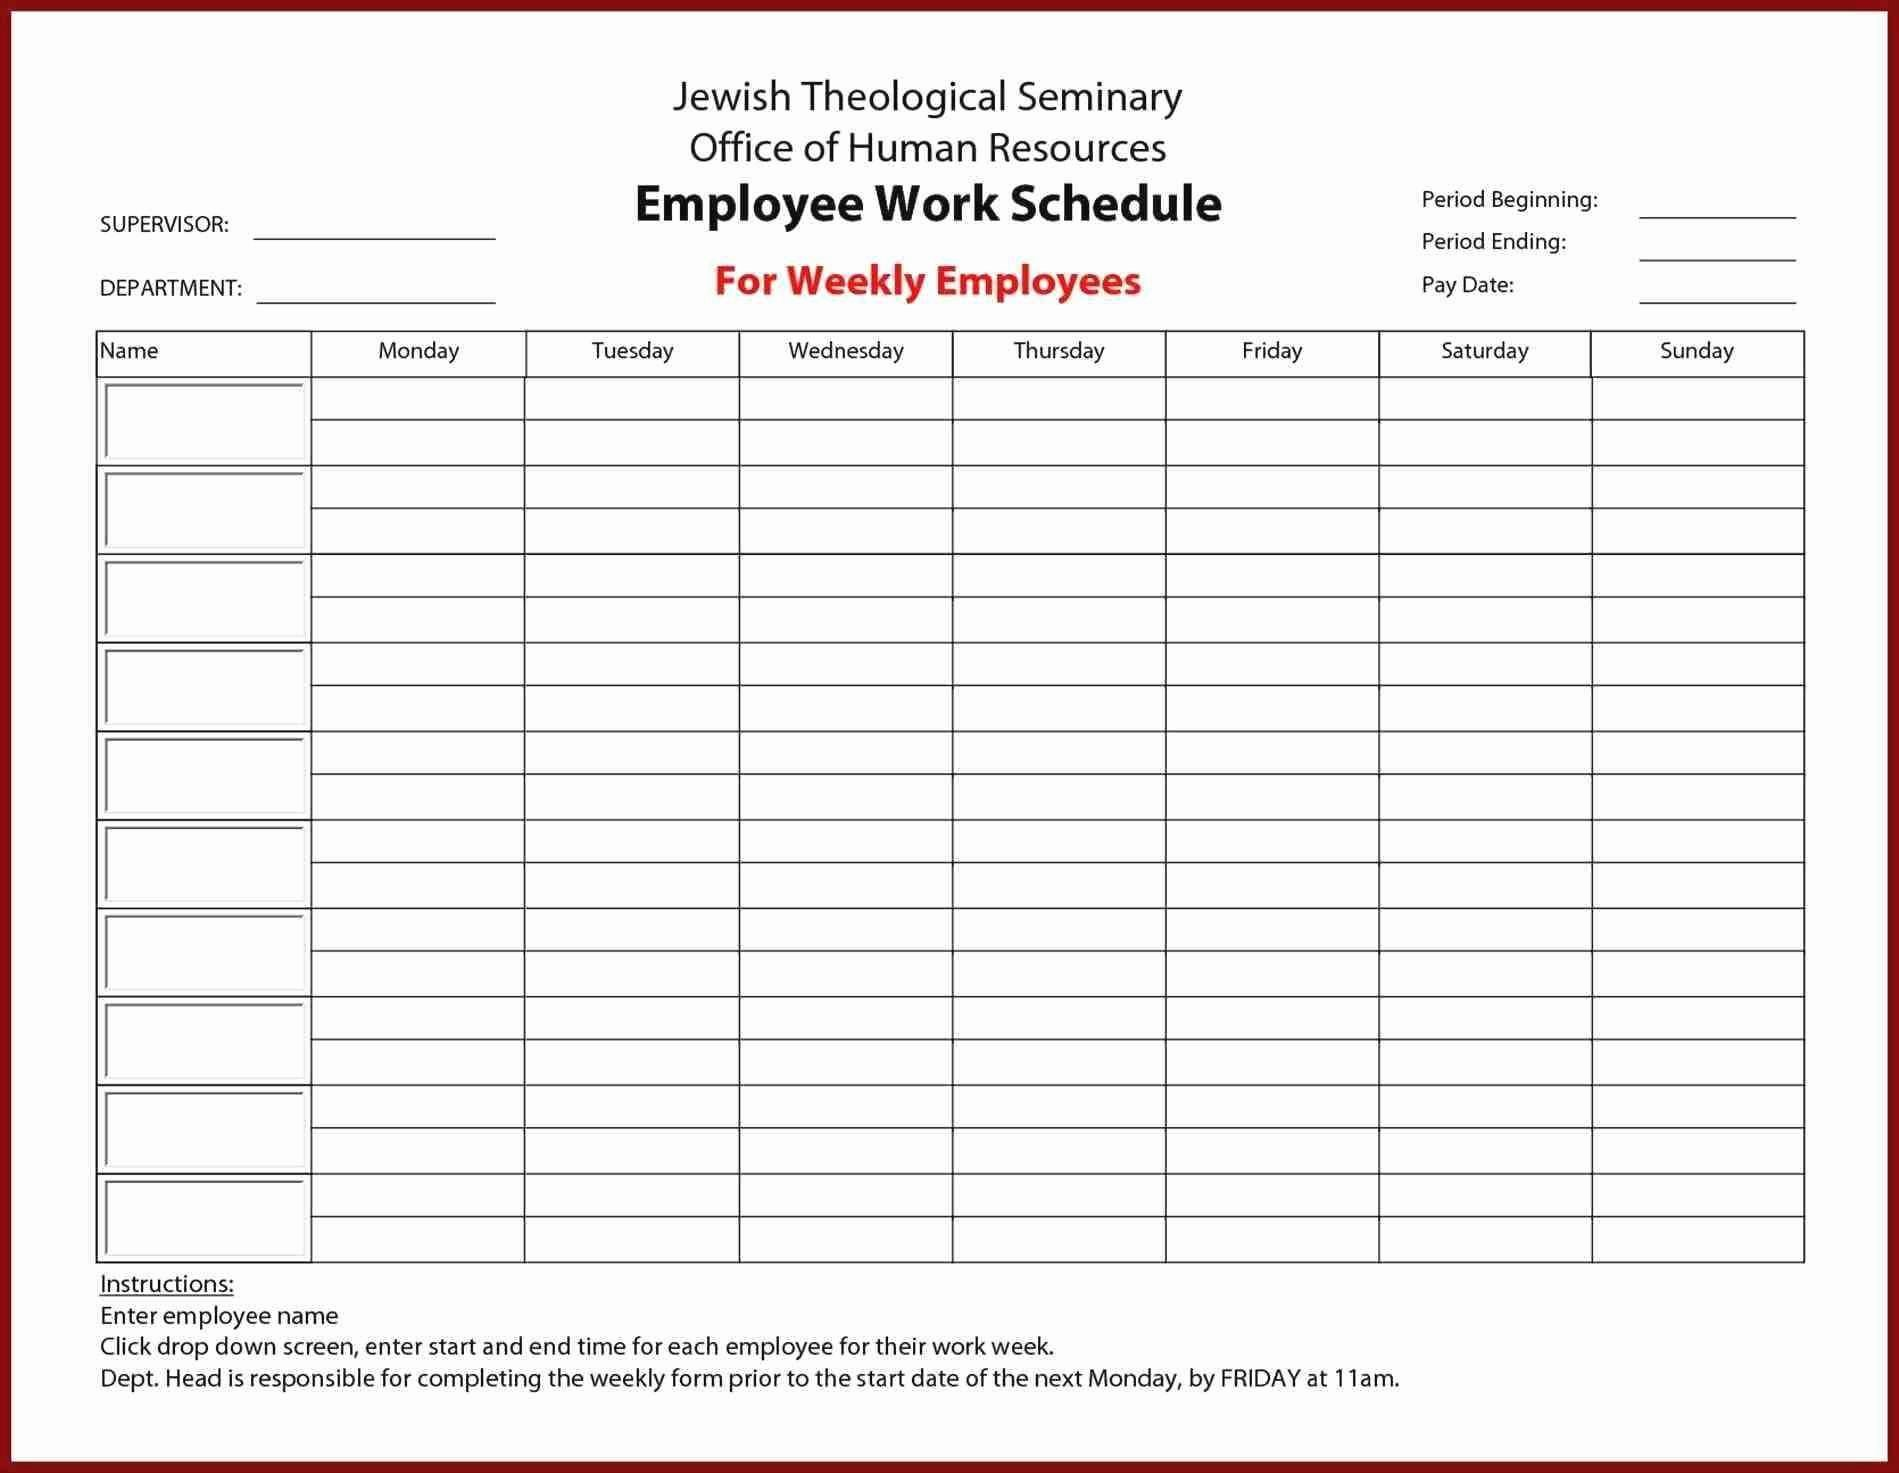 Employee Lunch Schedule Template Elegant Awesome Employee Shift Schedule Excel Template Download